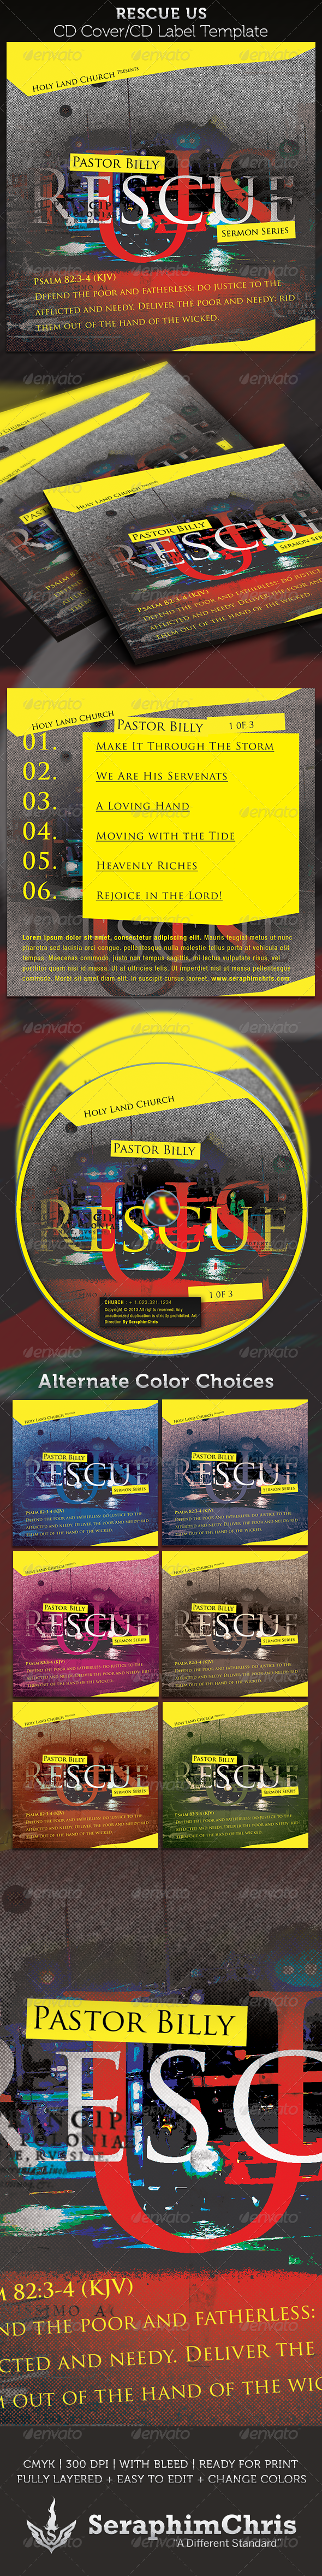 Rescue US CD Cover Artwork Template - CD & DVD Artwork Print Templates